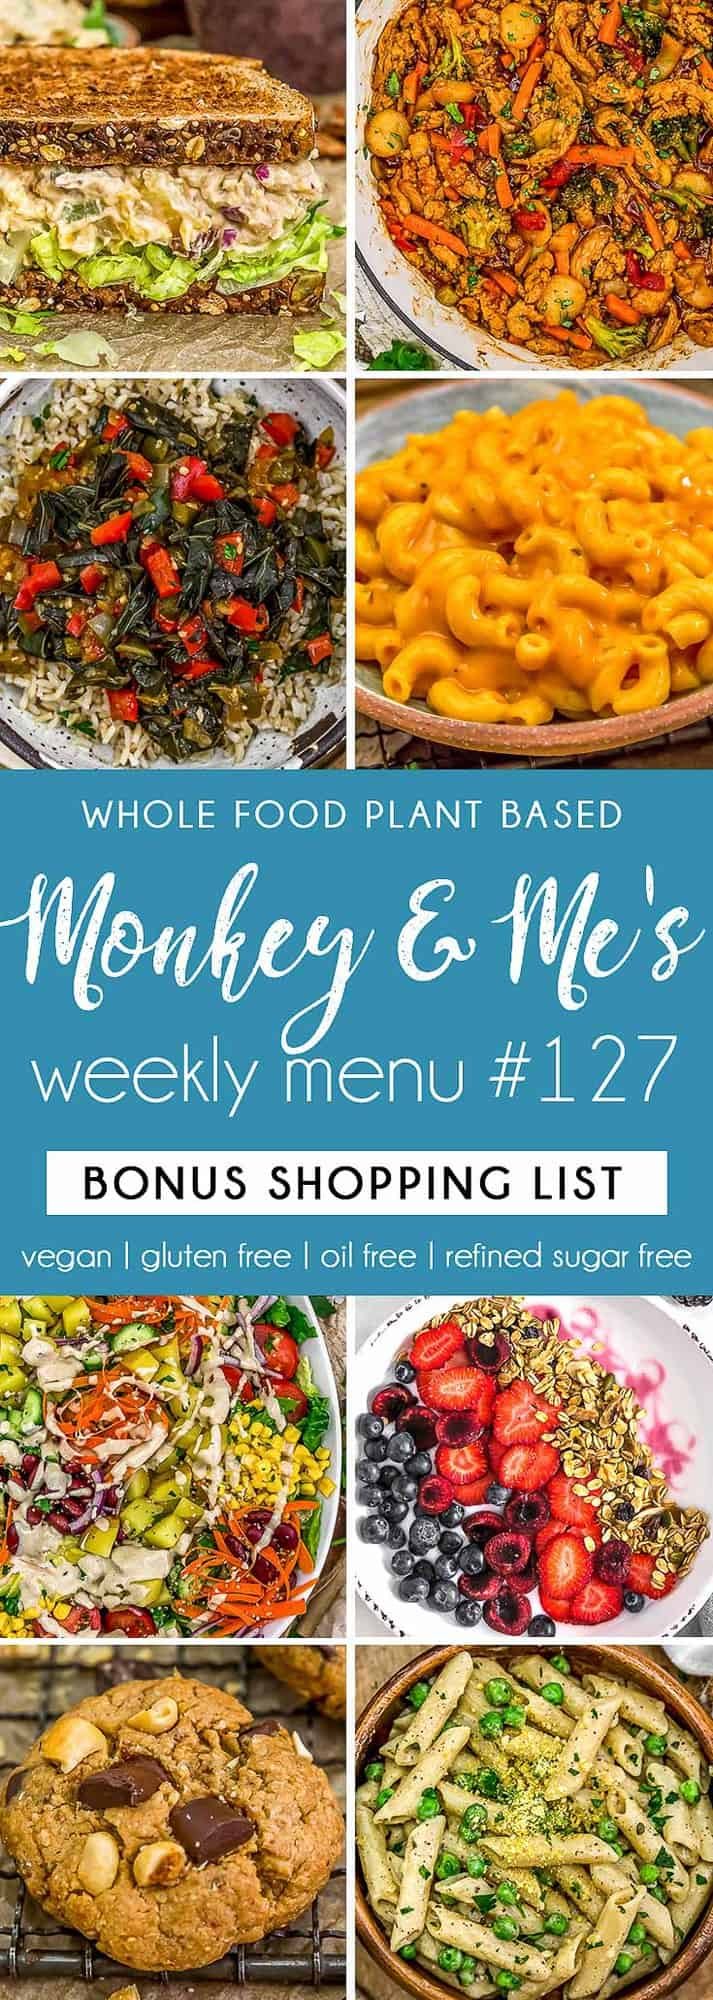 Monkey and Me's Menu 127 featuring 8 recipes